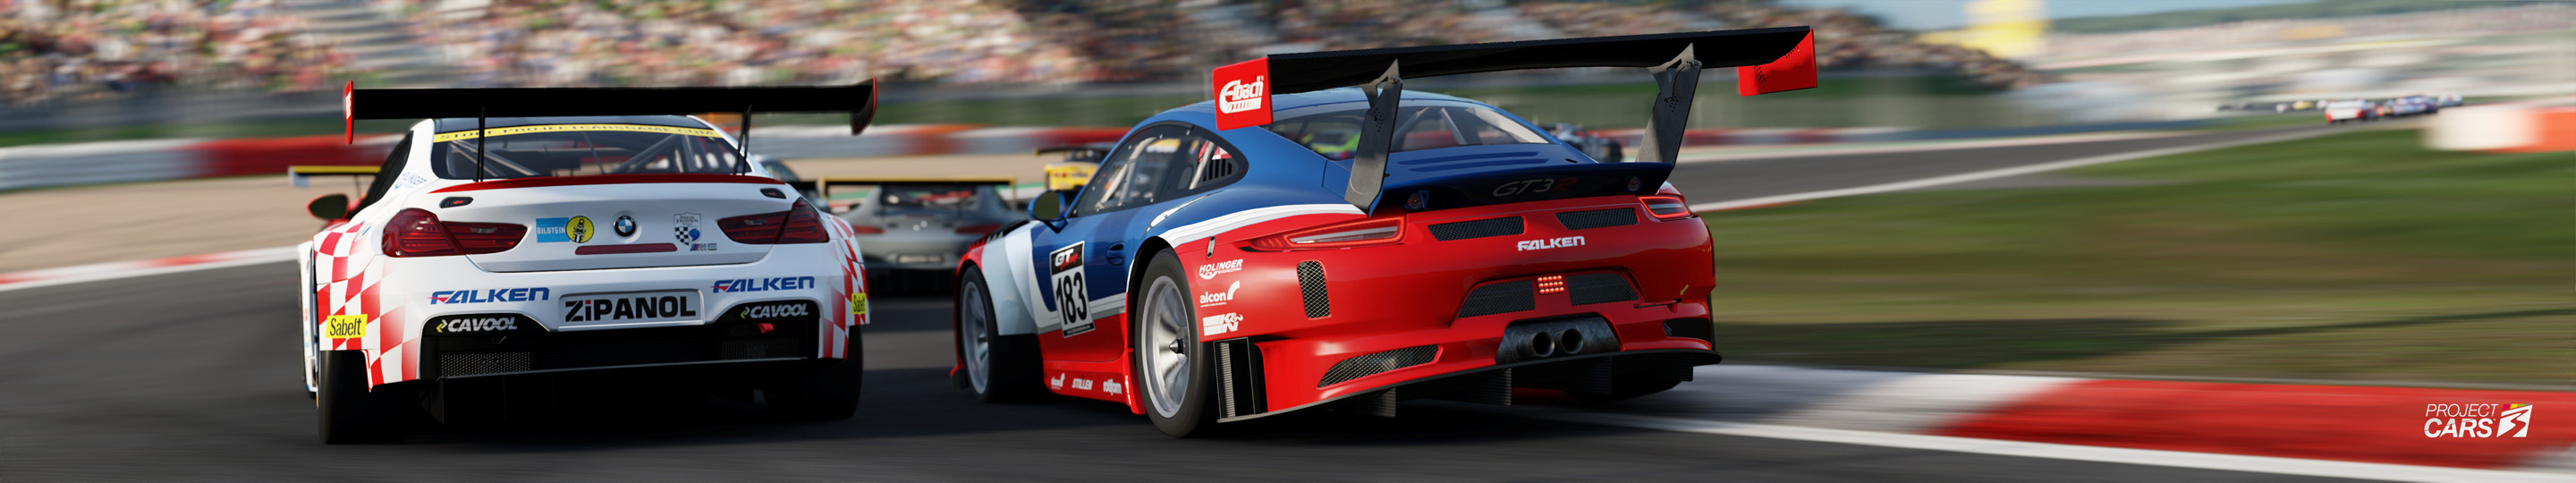 4 PROJECT CARS 3 PORSCHE 911 GT3 R at NURBURGRING copy.jpg